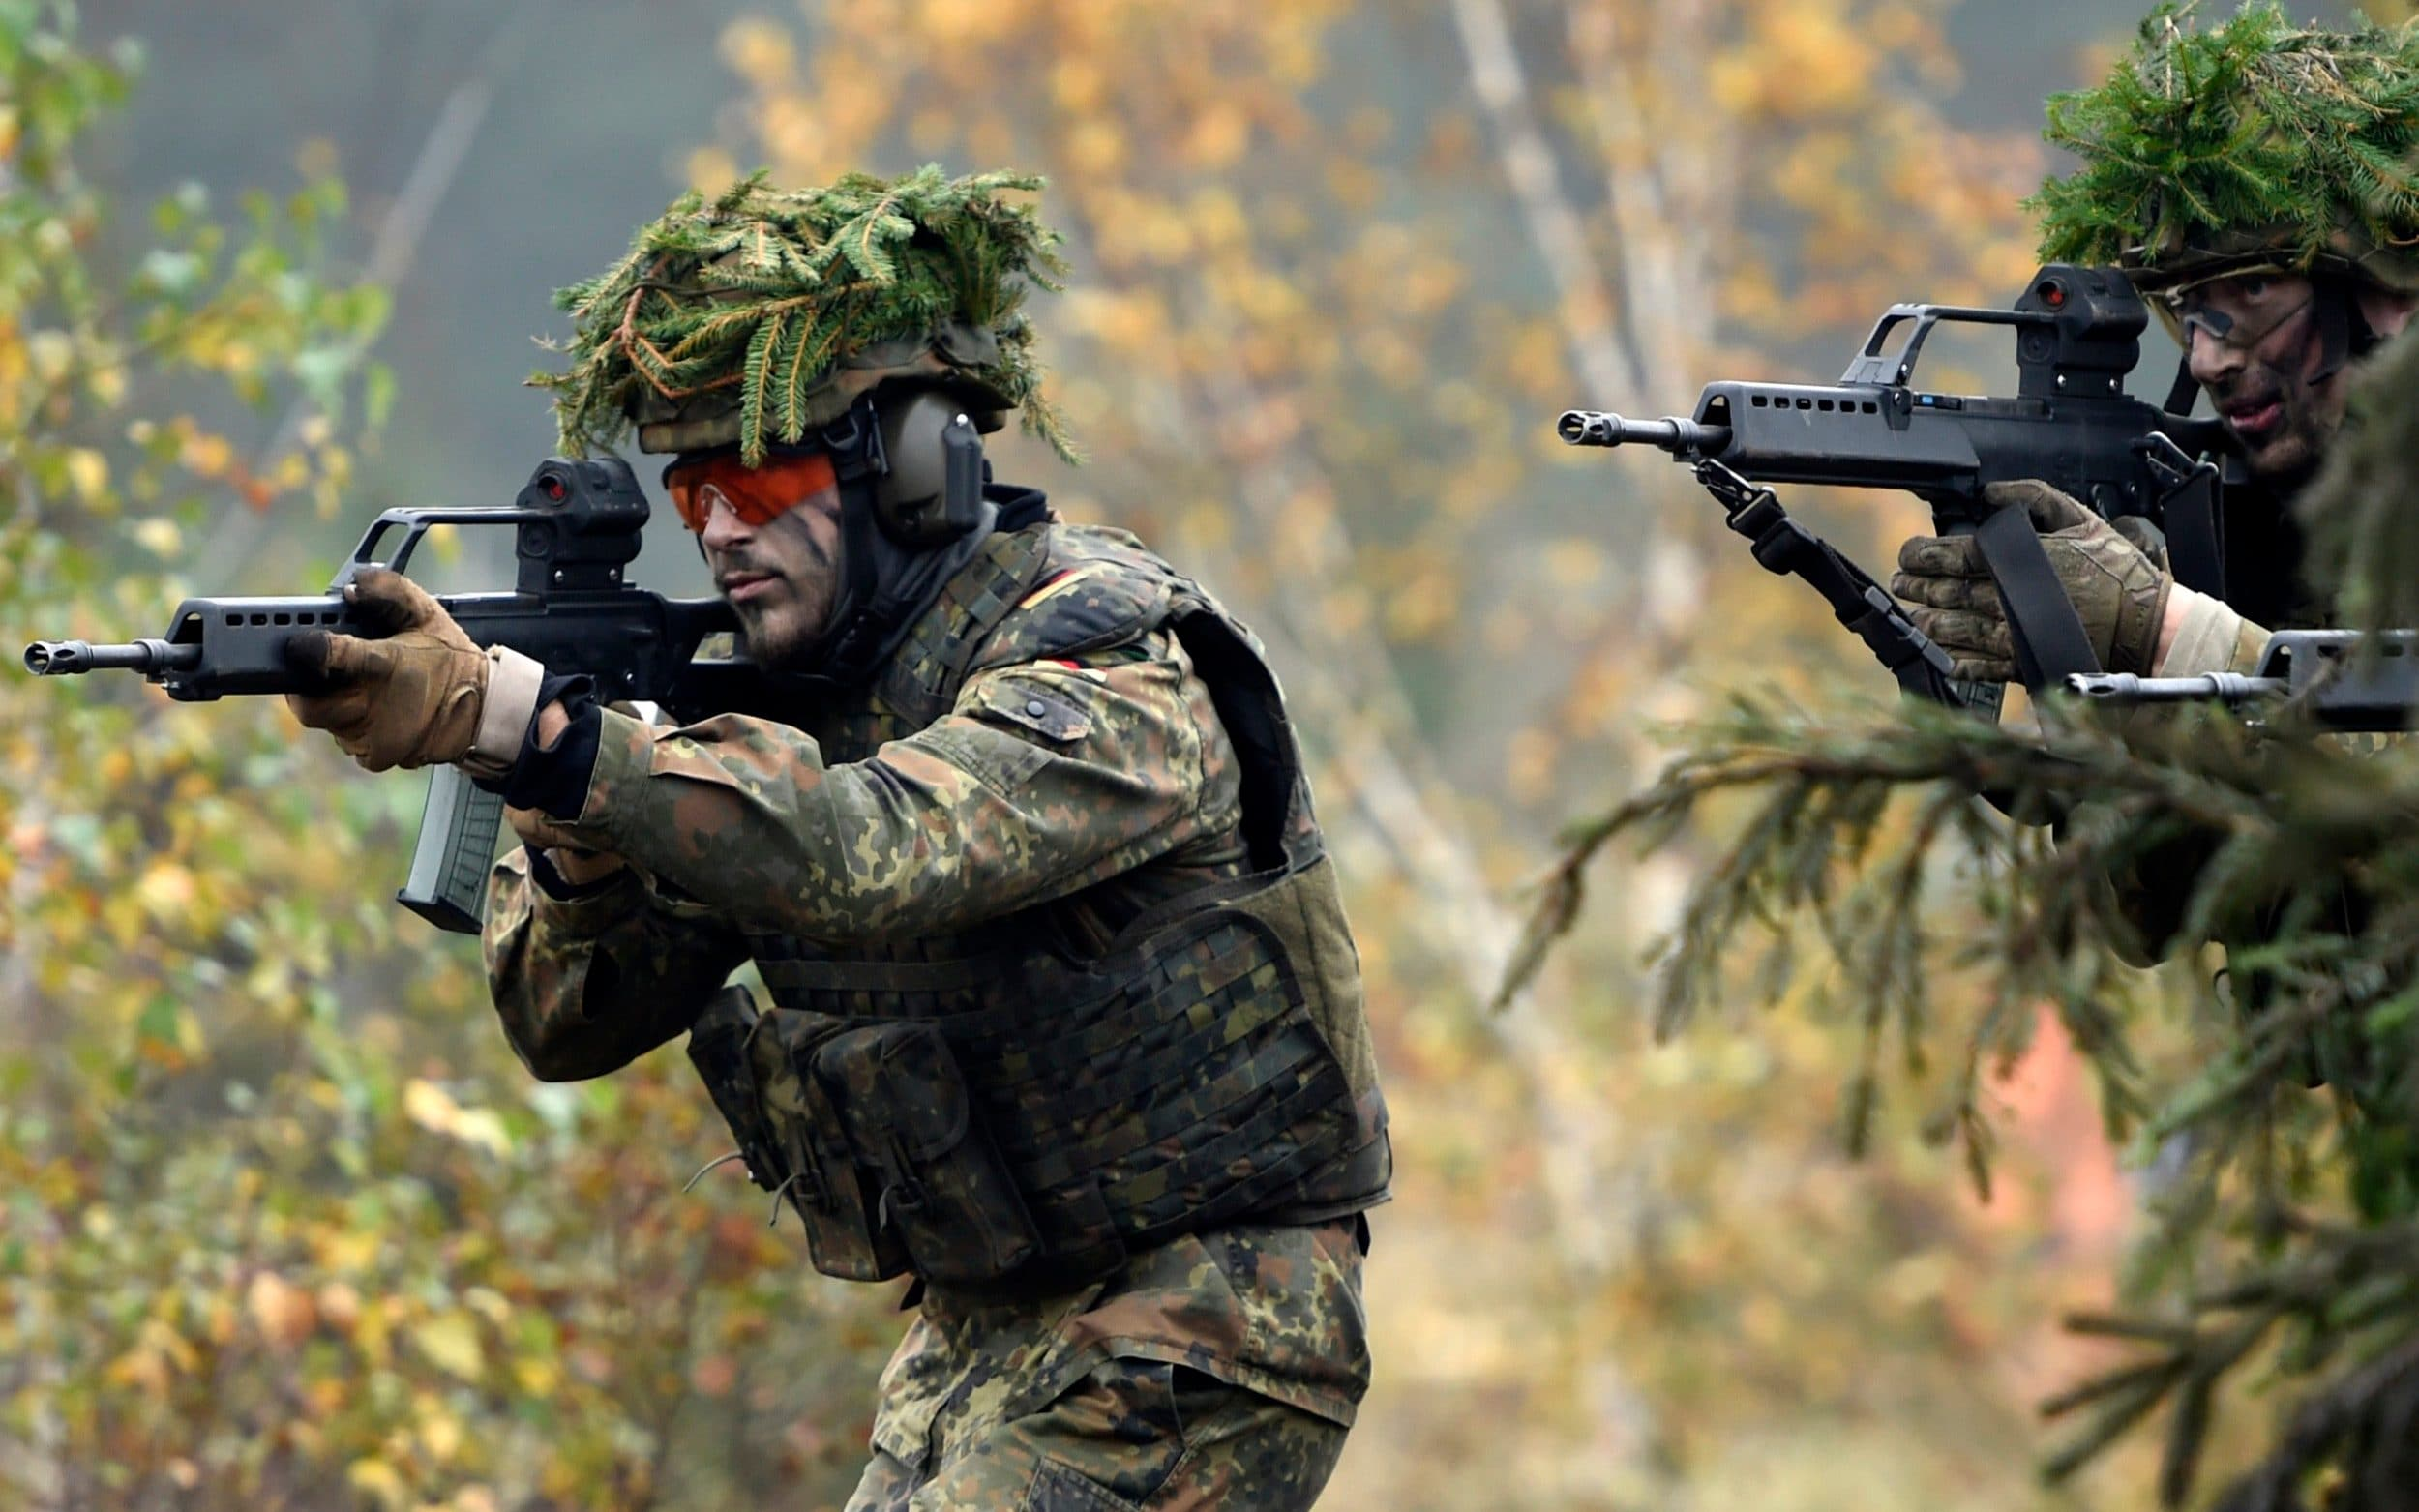 Armored infantryman of the Bundeswehr, the German armed forces, during a simulated attack as part of military exercises